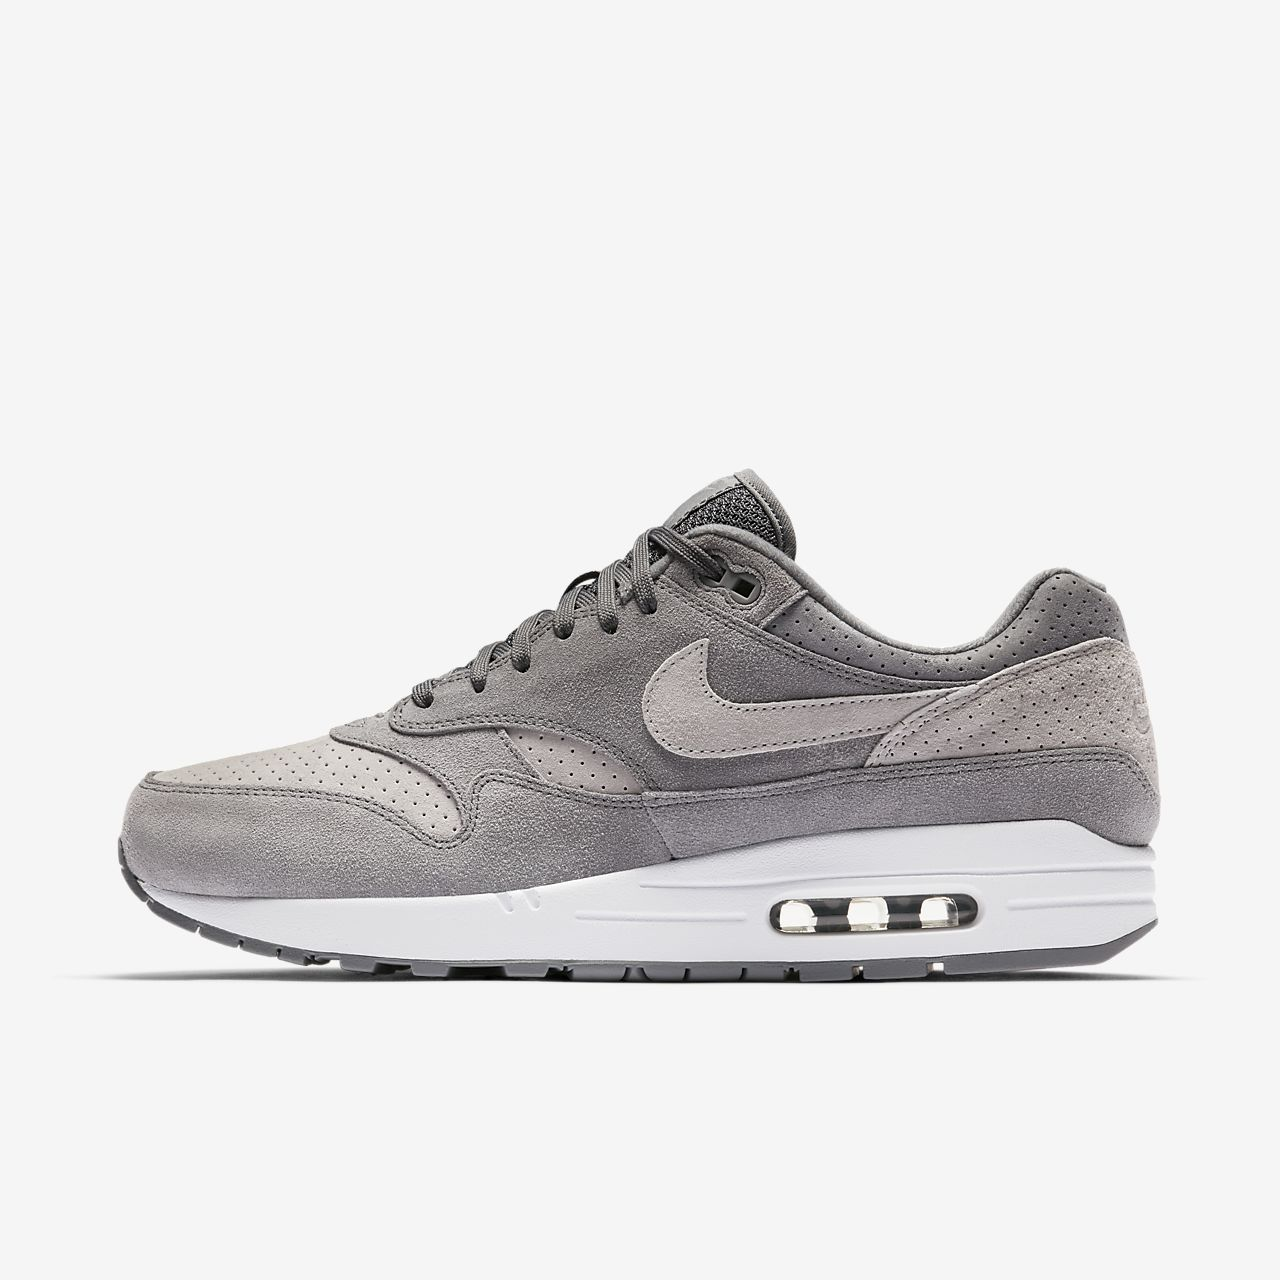 men's nike air max 1 premium running shoes nz